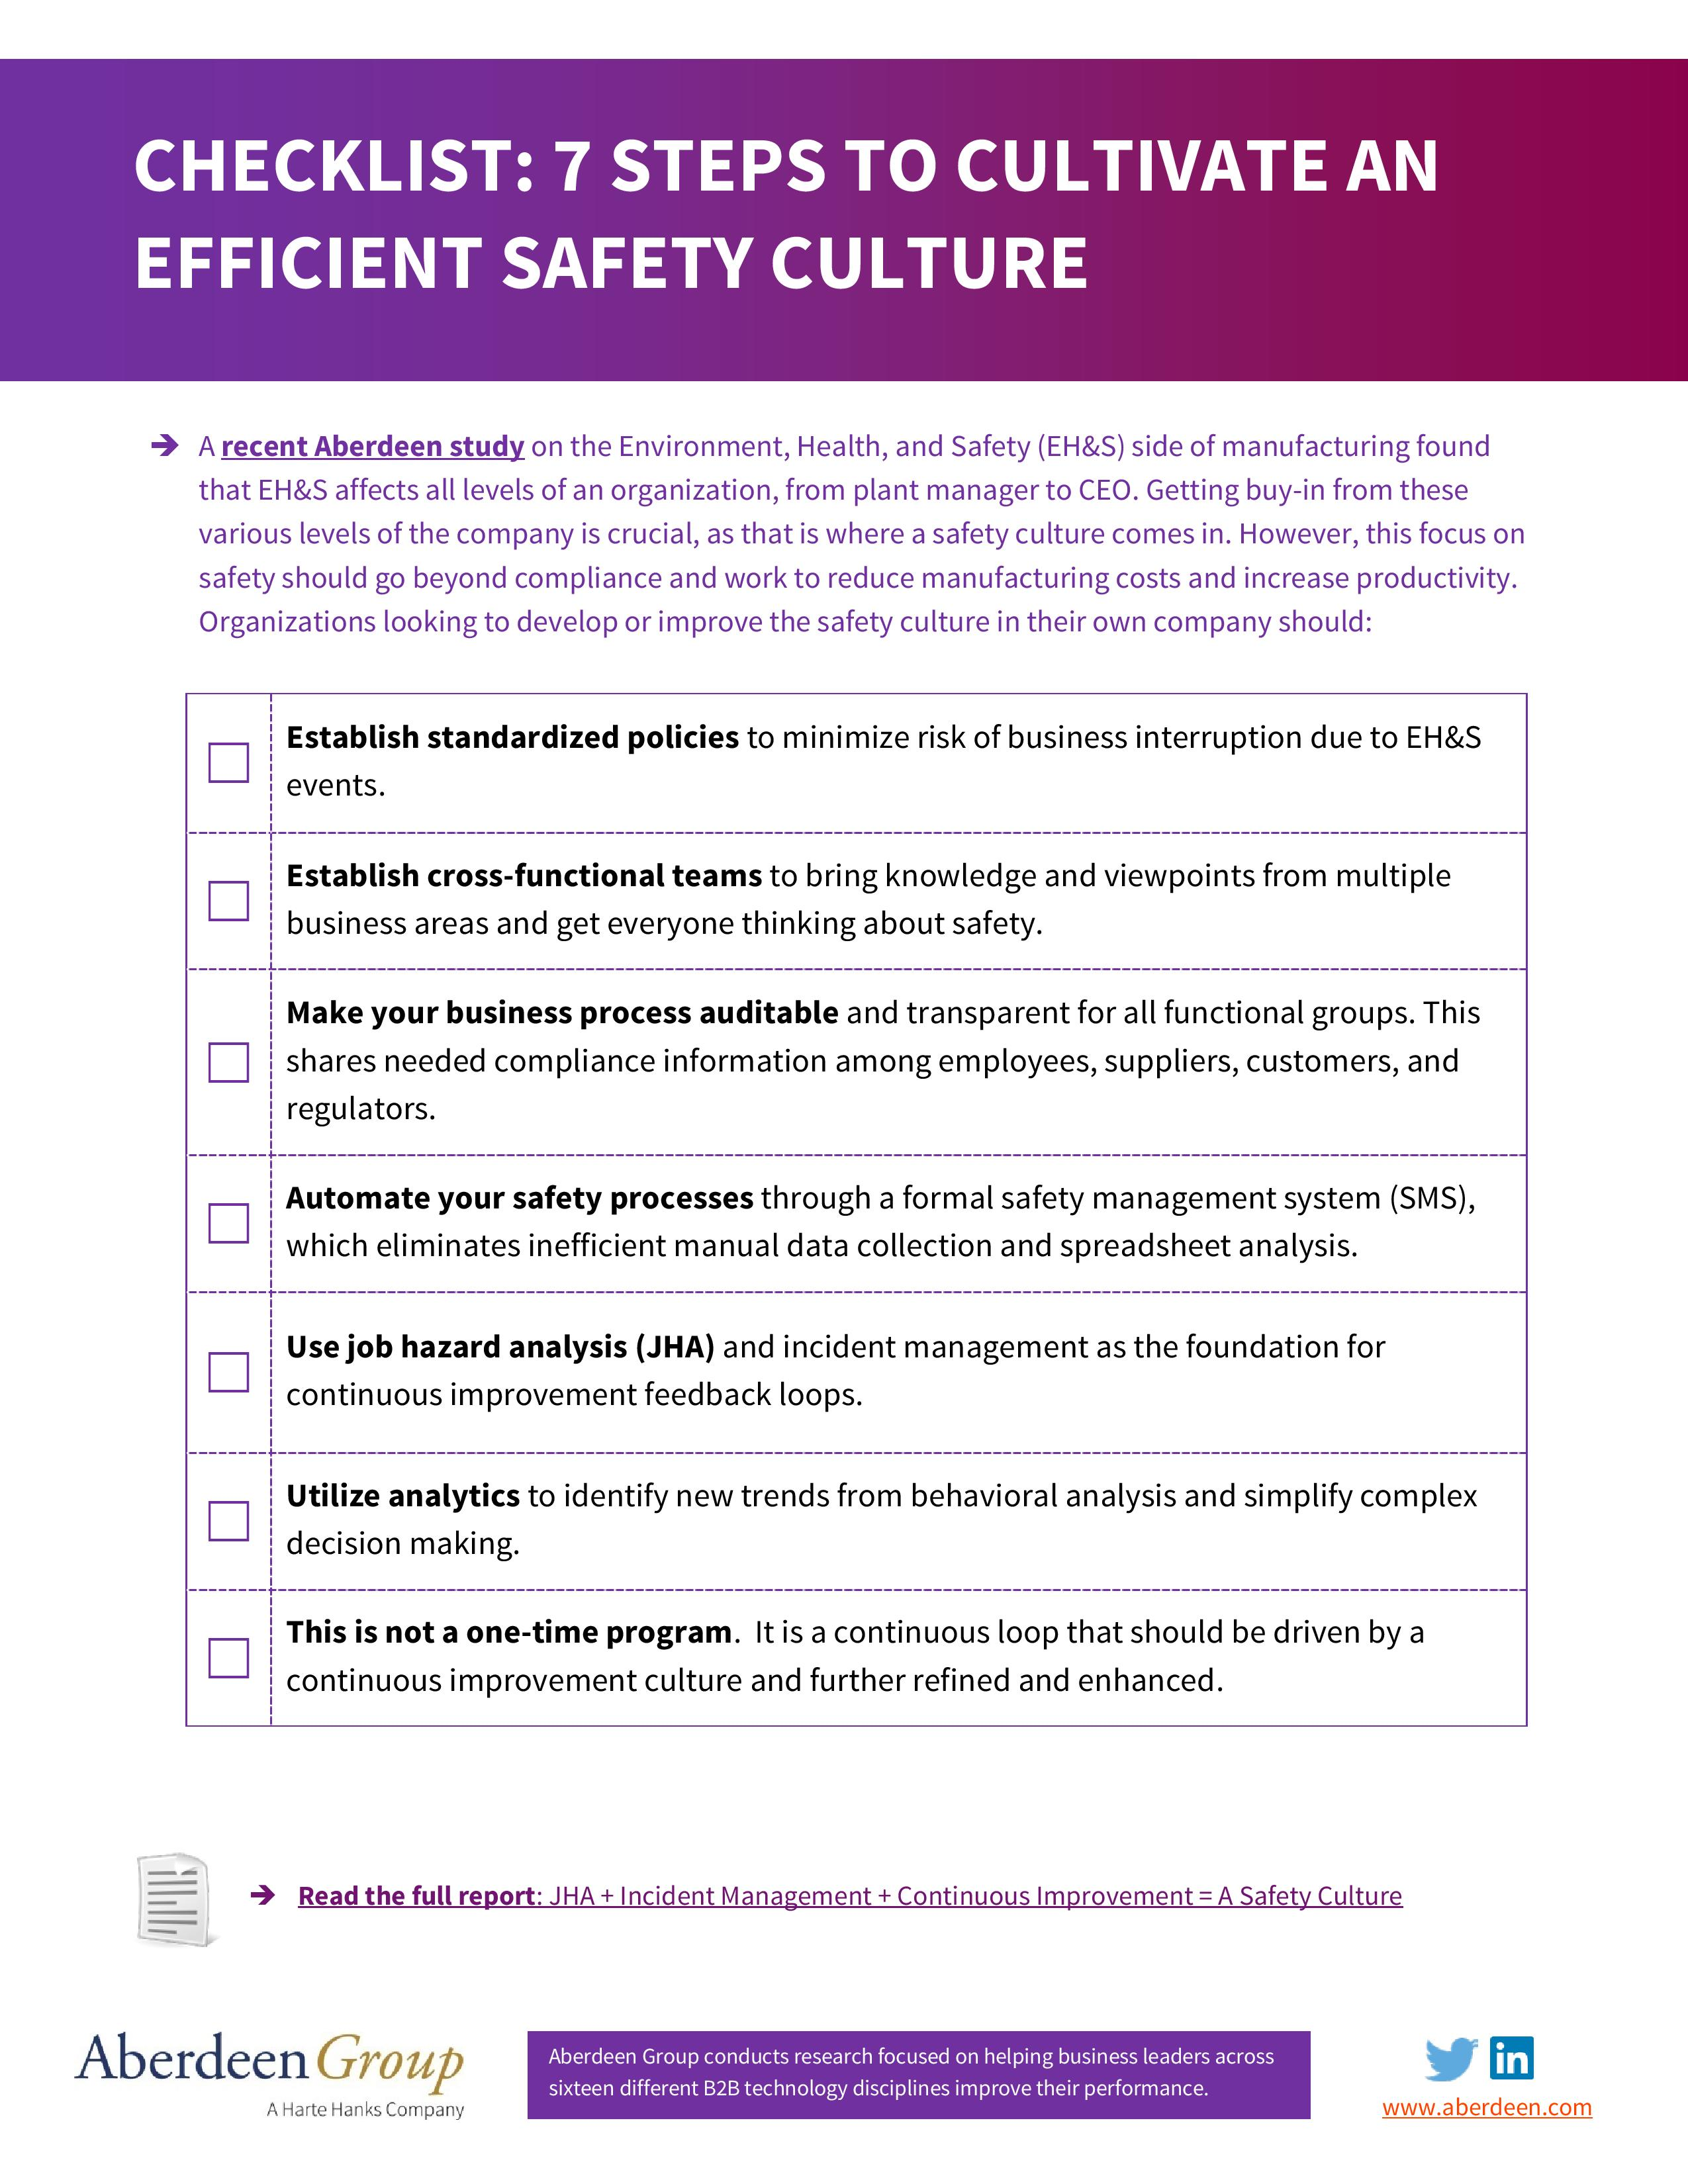 Checklist 7 Steps To Cultivate An Efficient Safety